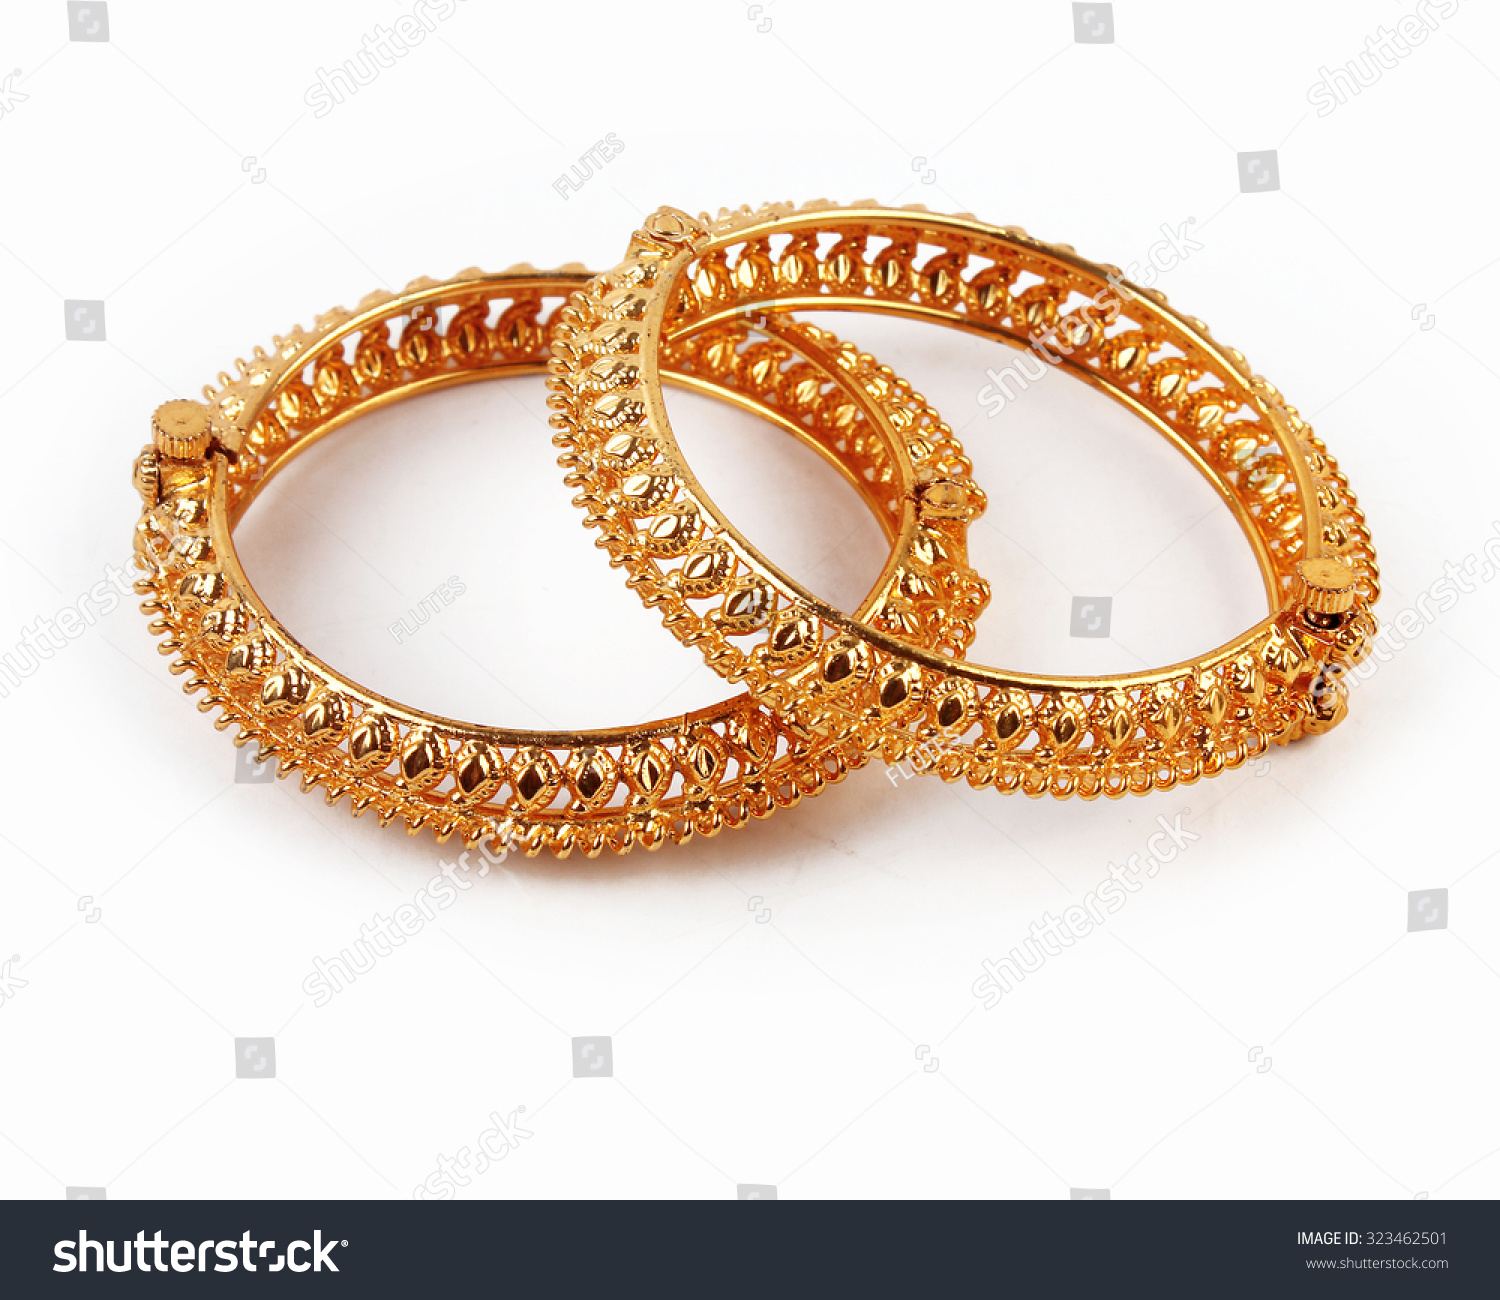 Royalty-free Traditional Indian Gold Bangles #323462501 Stock ...